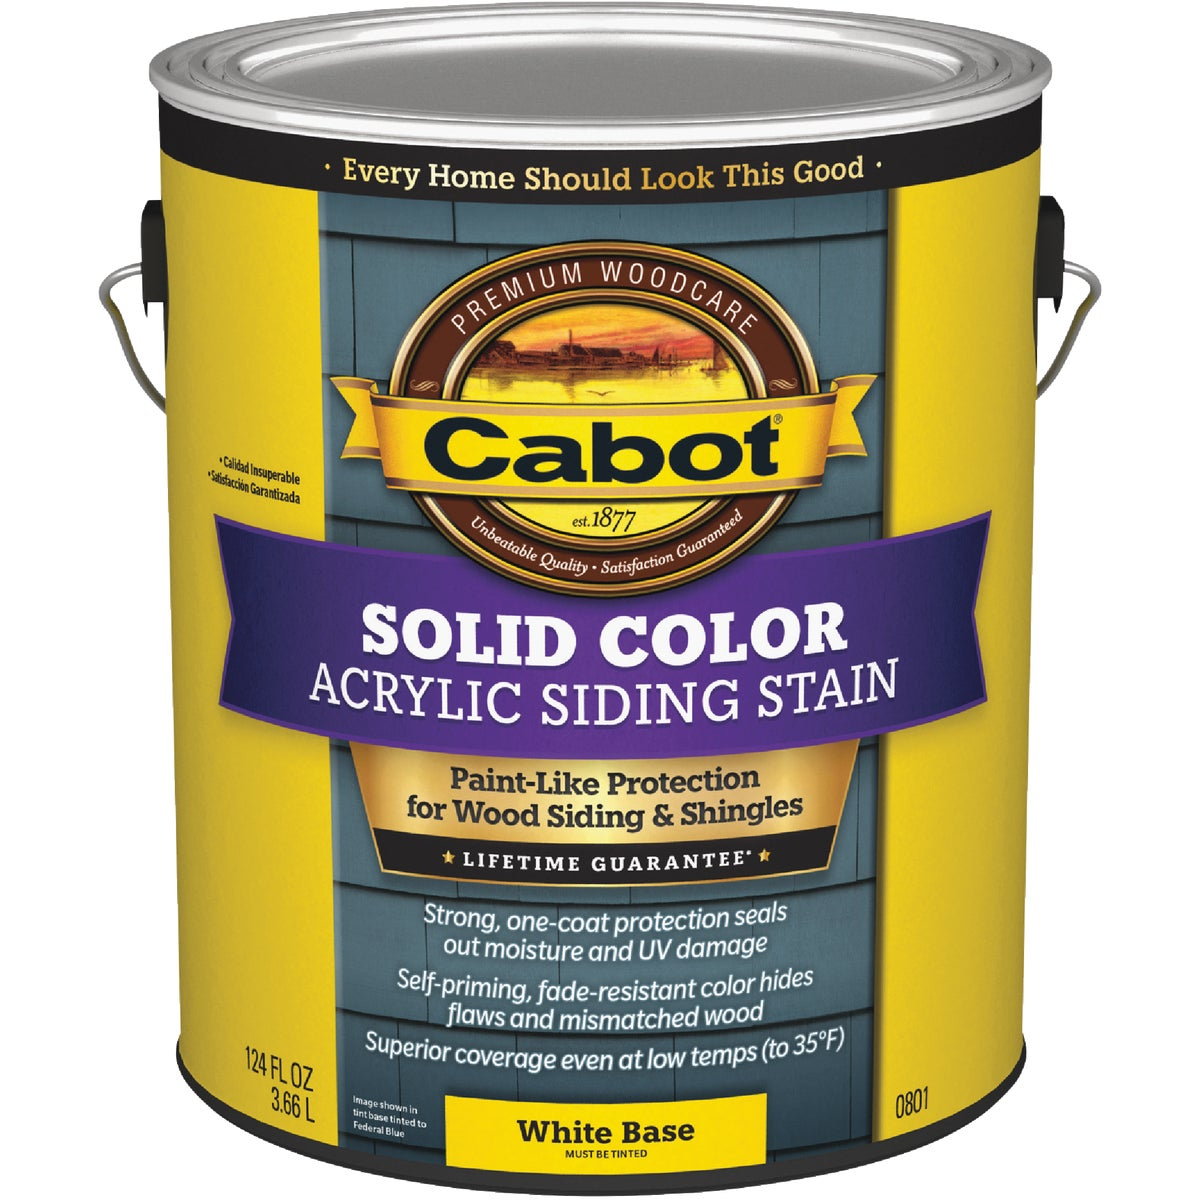 WHITE BS PRO SOLID STAIN - 140.0000801.007 by Valspar Corp